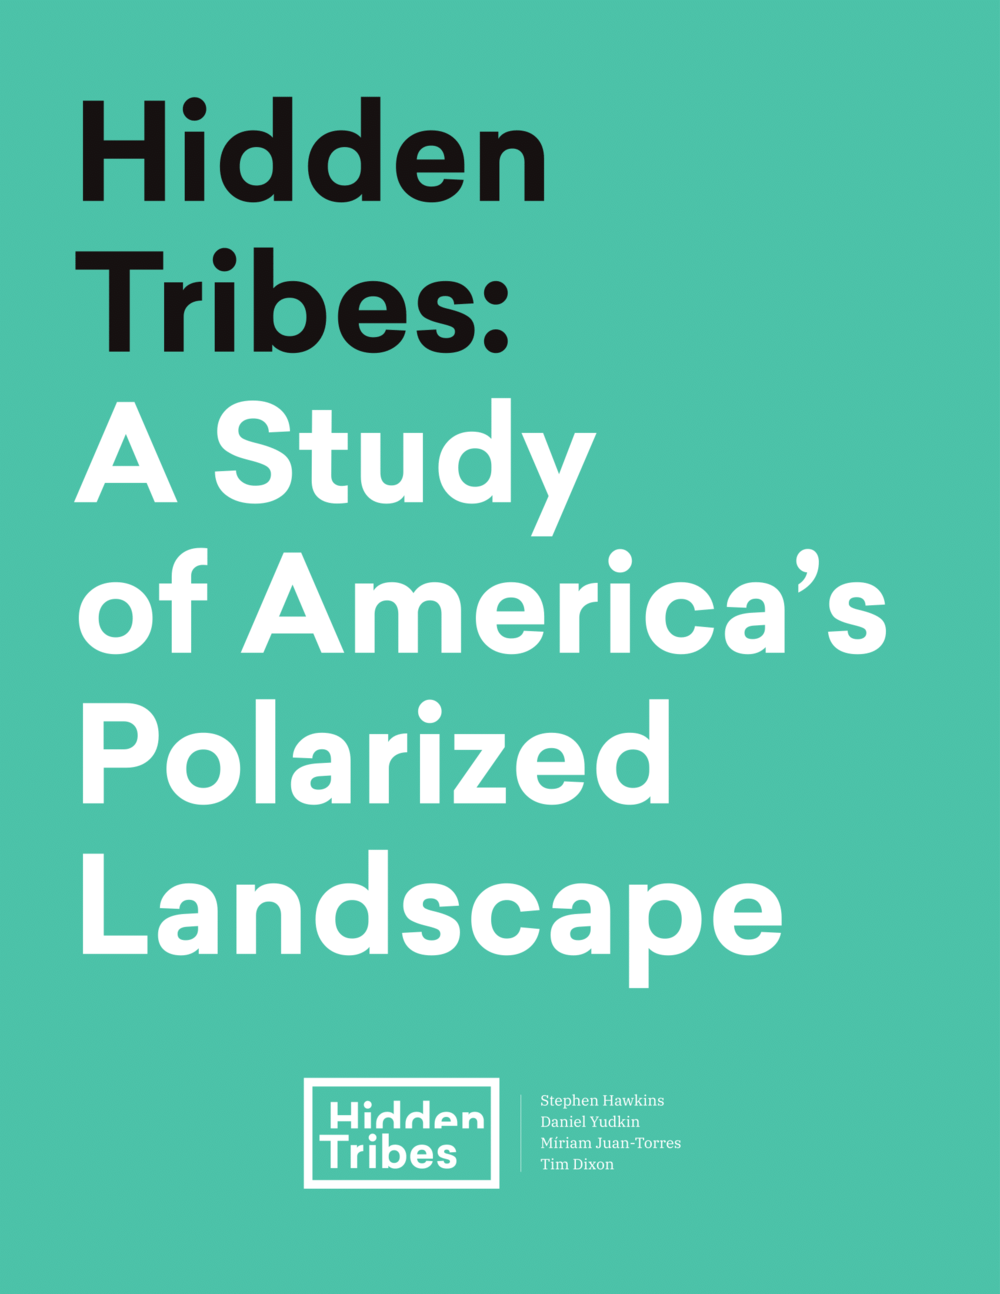 hidden_tribes_executive_summary-pages-1-1.png